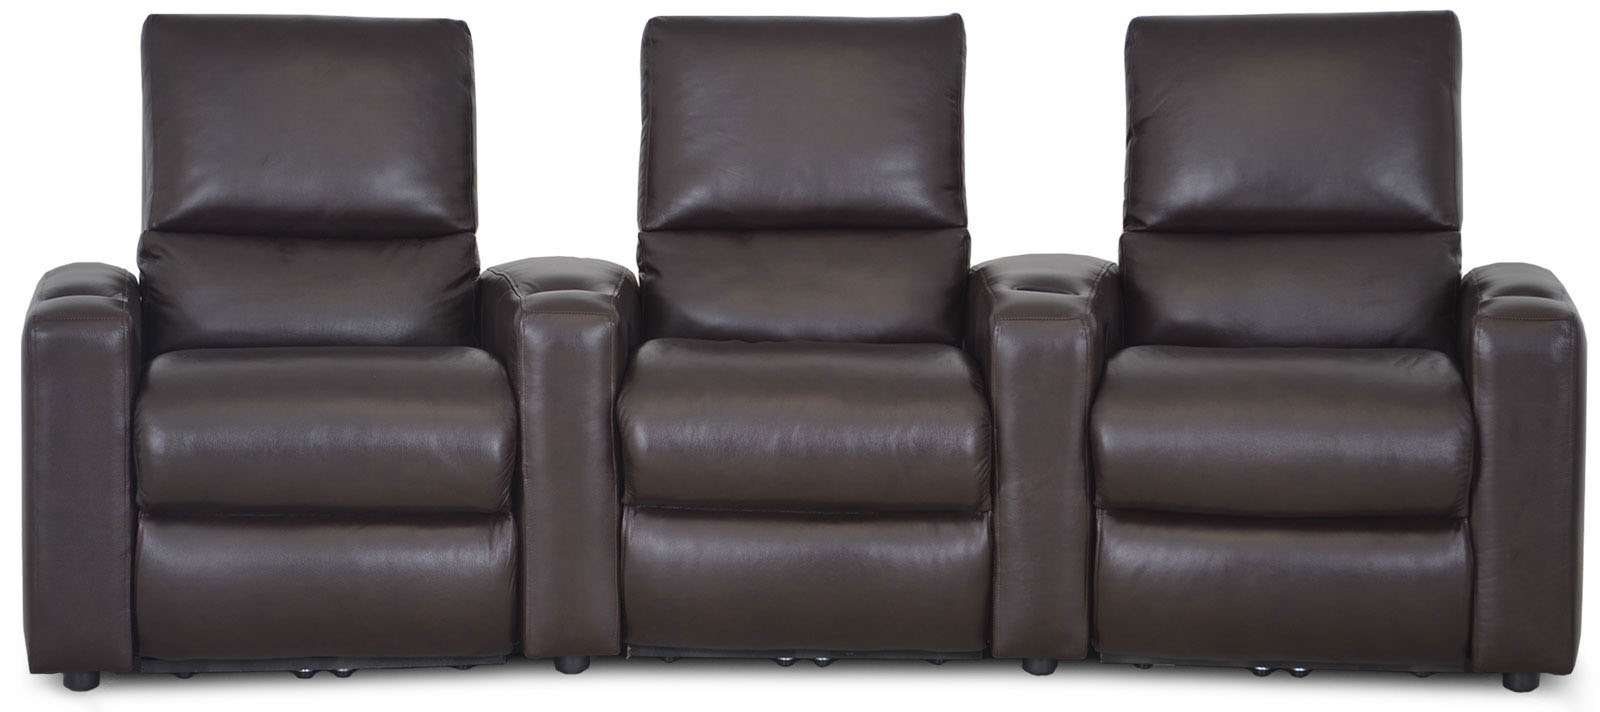 Vintage Leather Furniture Manufacturing home theater media seating leather sofa. Leather furniture manufacturer in the USA.